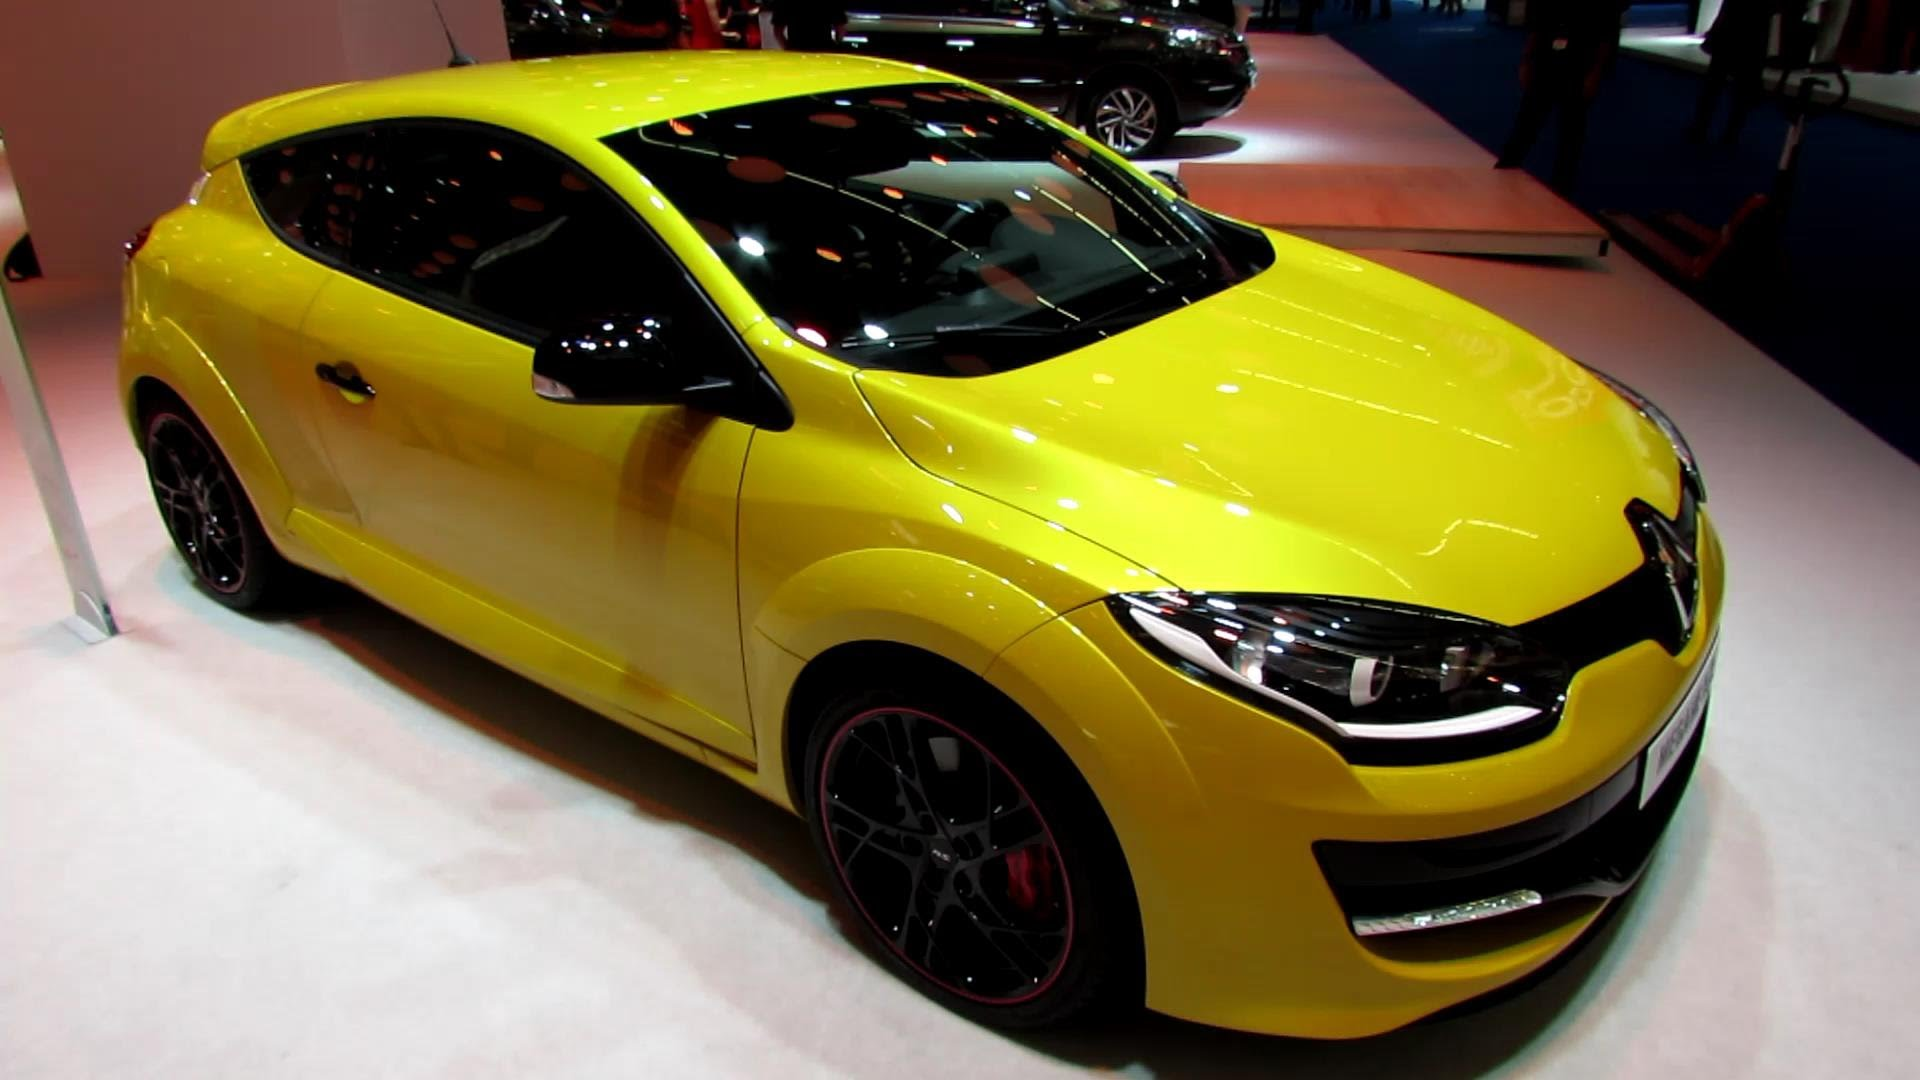 2014 renault clio iii pictures information and specs. Black Bedroom Furniture Sets. Home Design Ideas